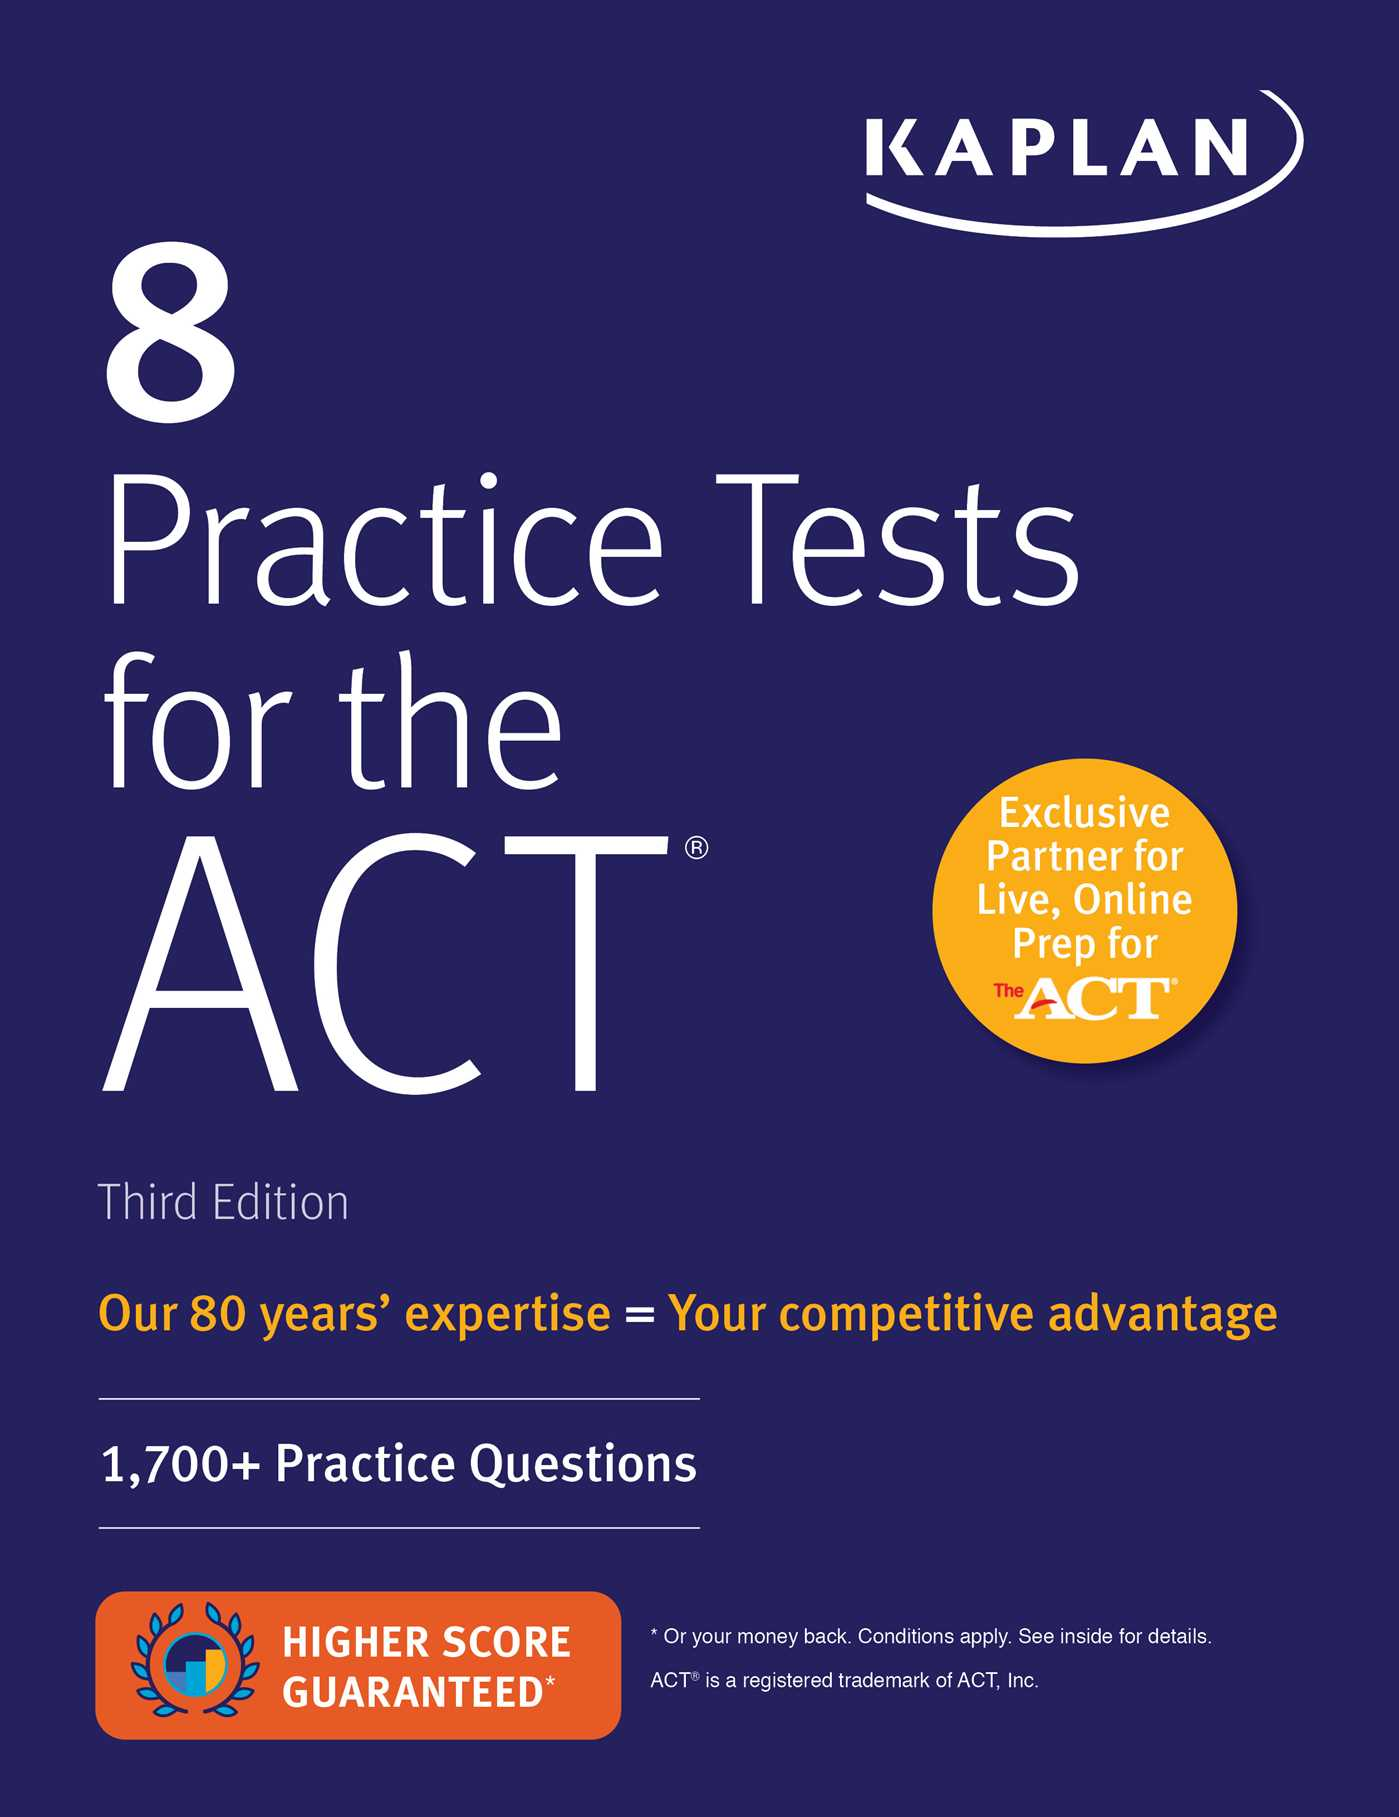 Book Cover Image (jpg): 8 Practice Tests for the ACT. Third Edition Trade  Paperback 9781506235127